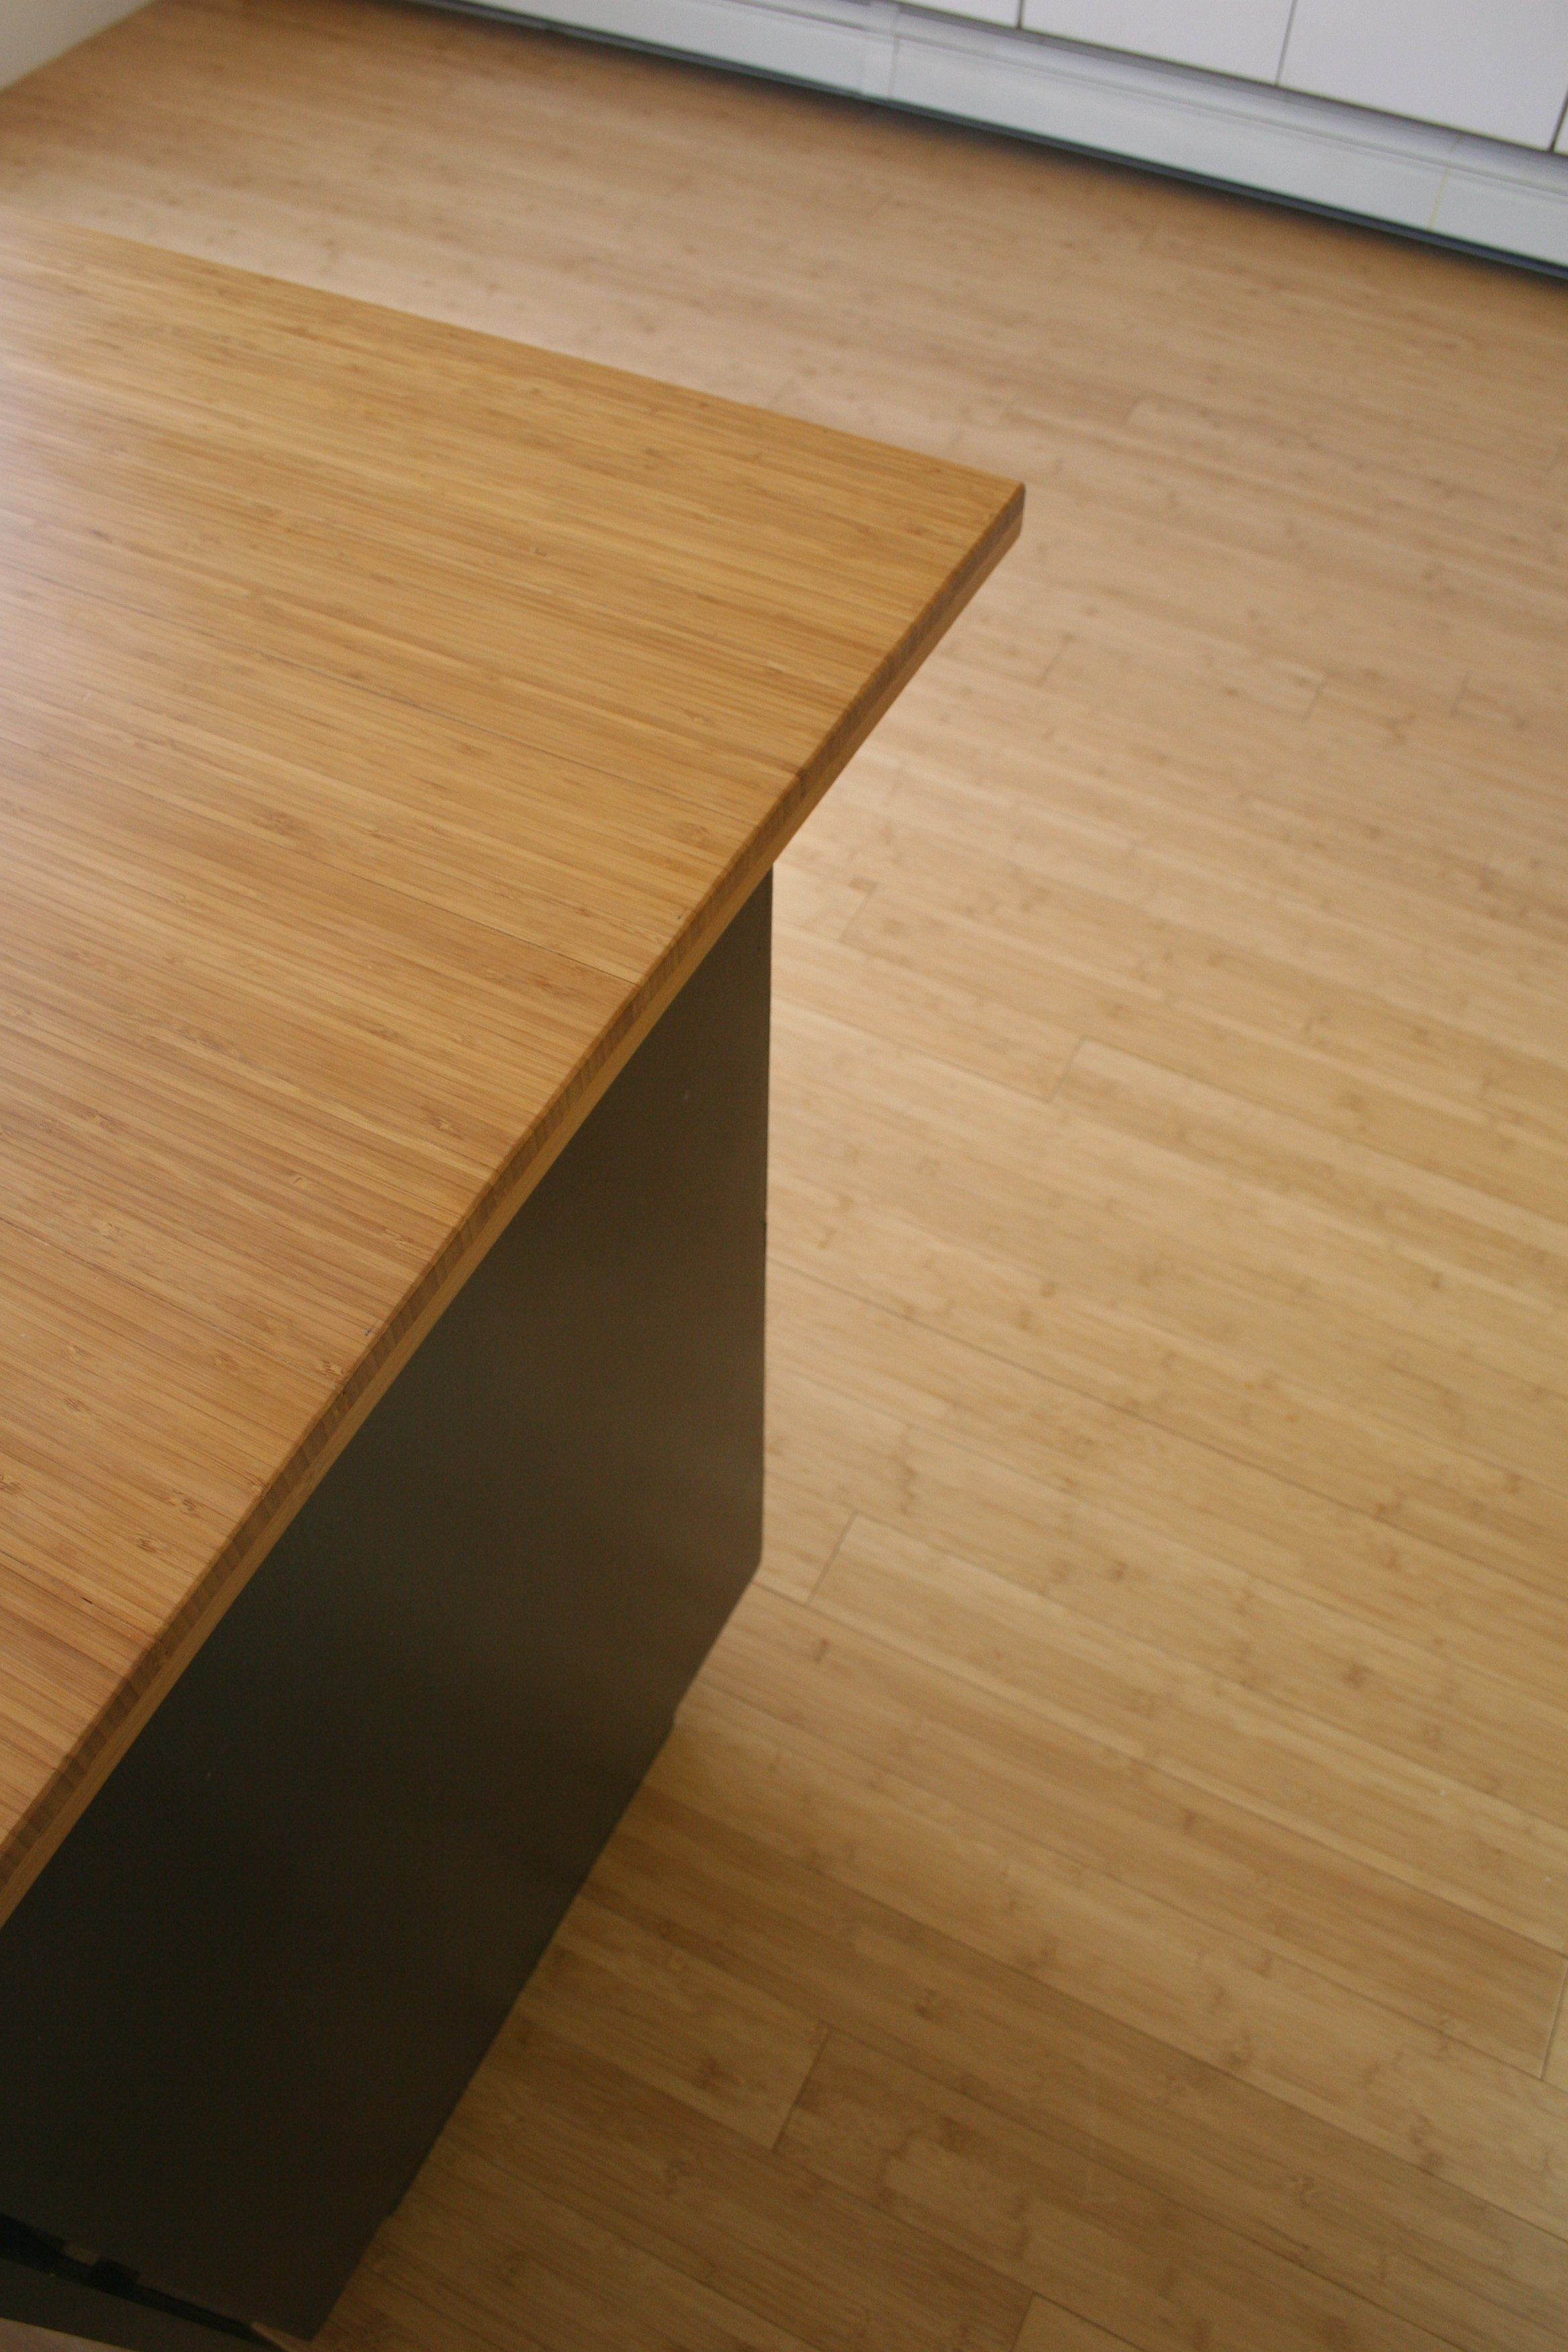 Bambu flooring used for counters